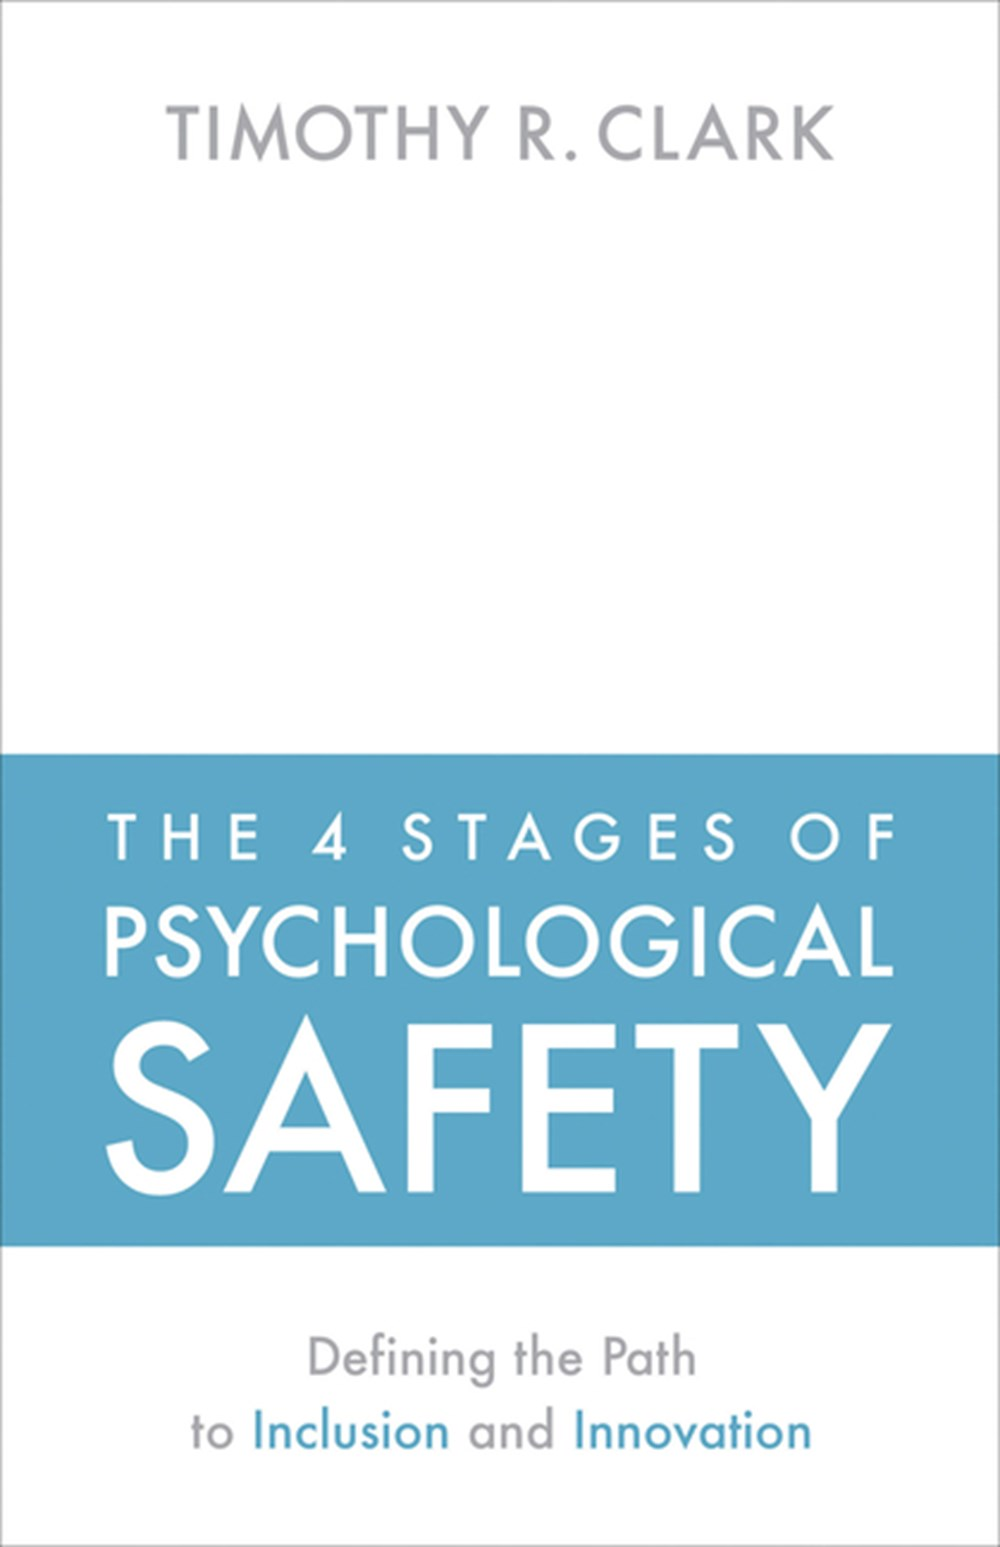 4 Stages of Psychological Safety Defining the Path to Inclusion and Innovation